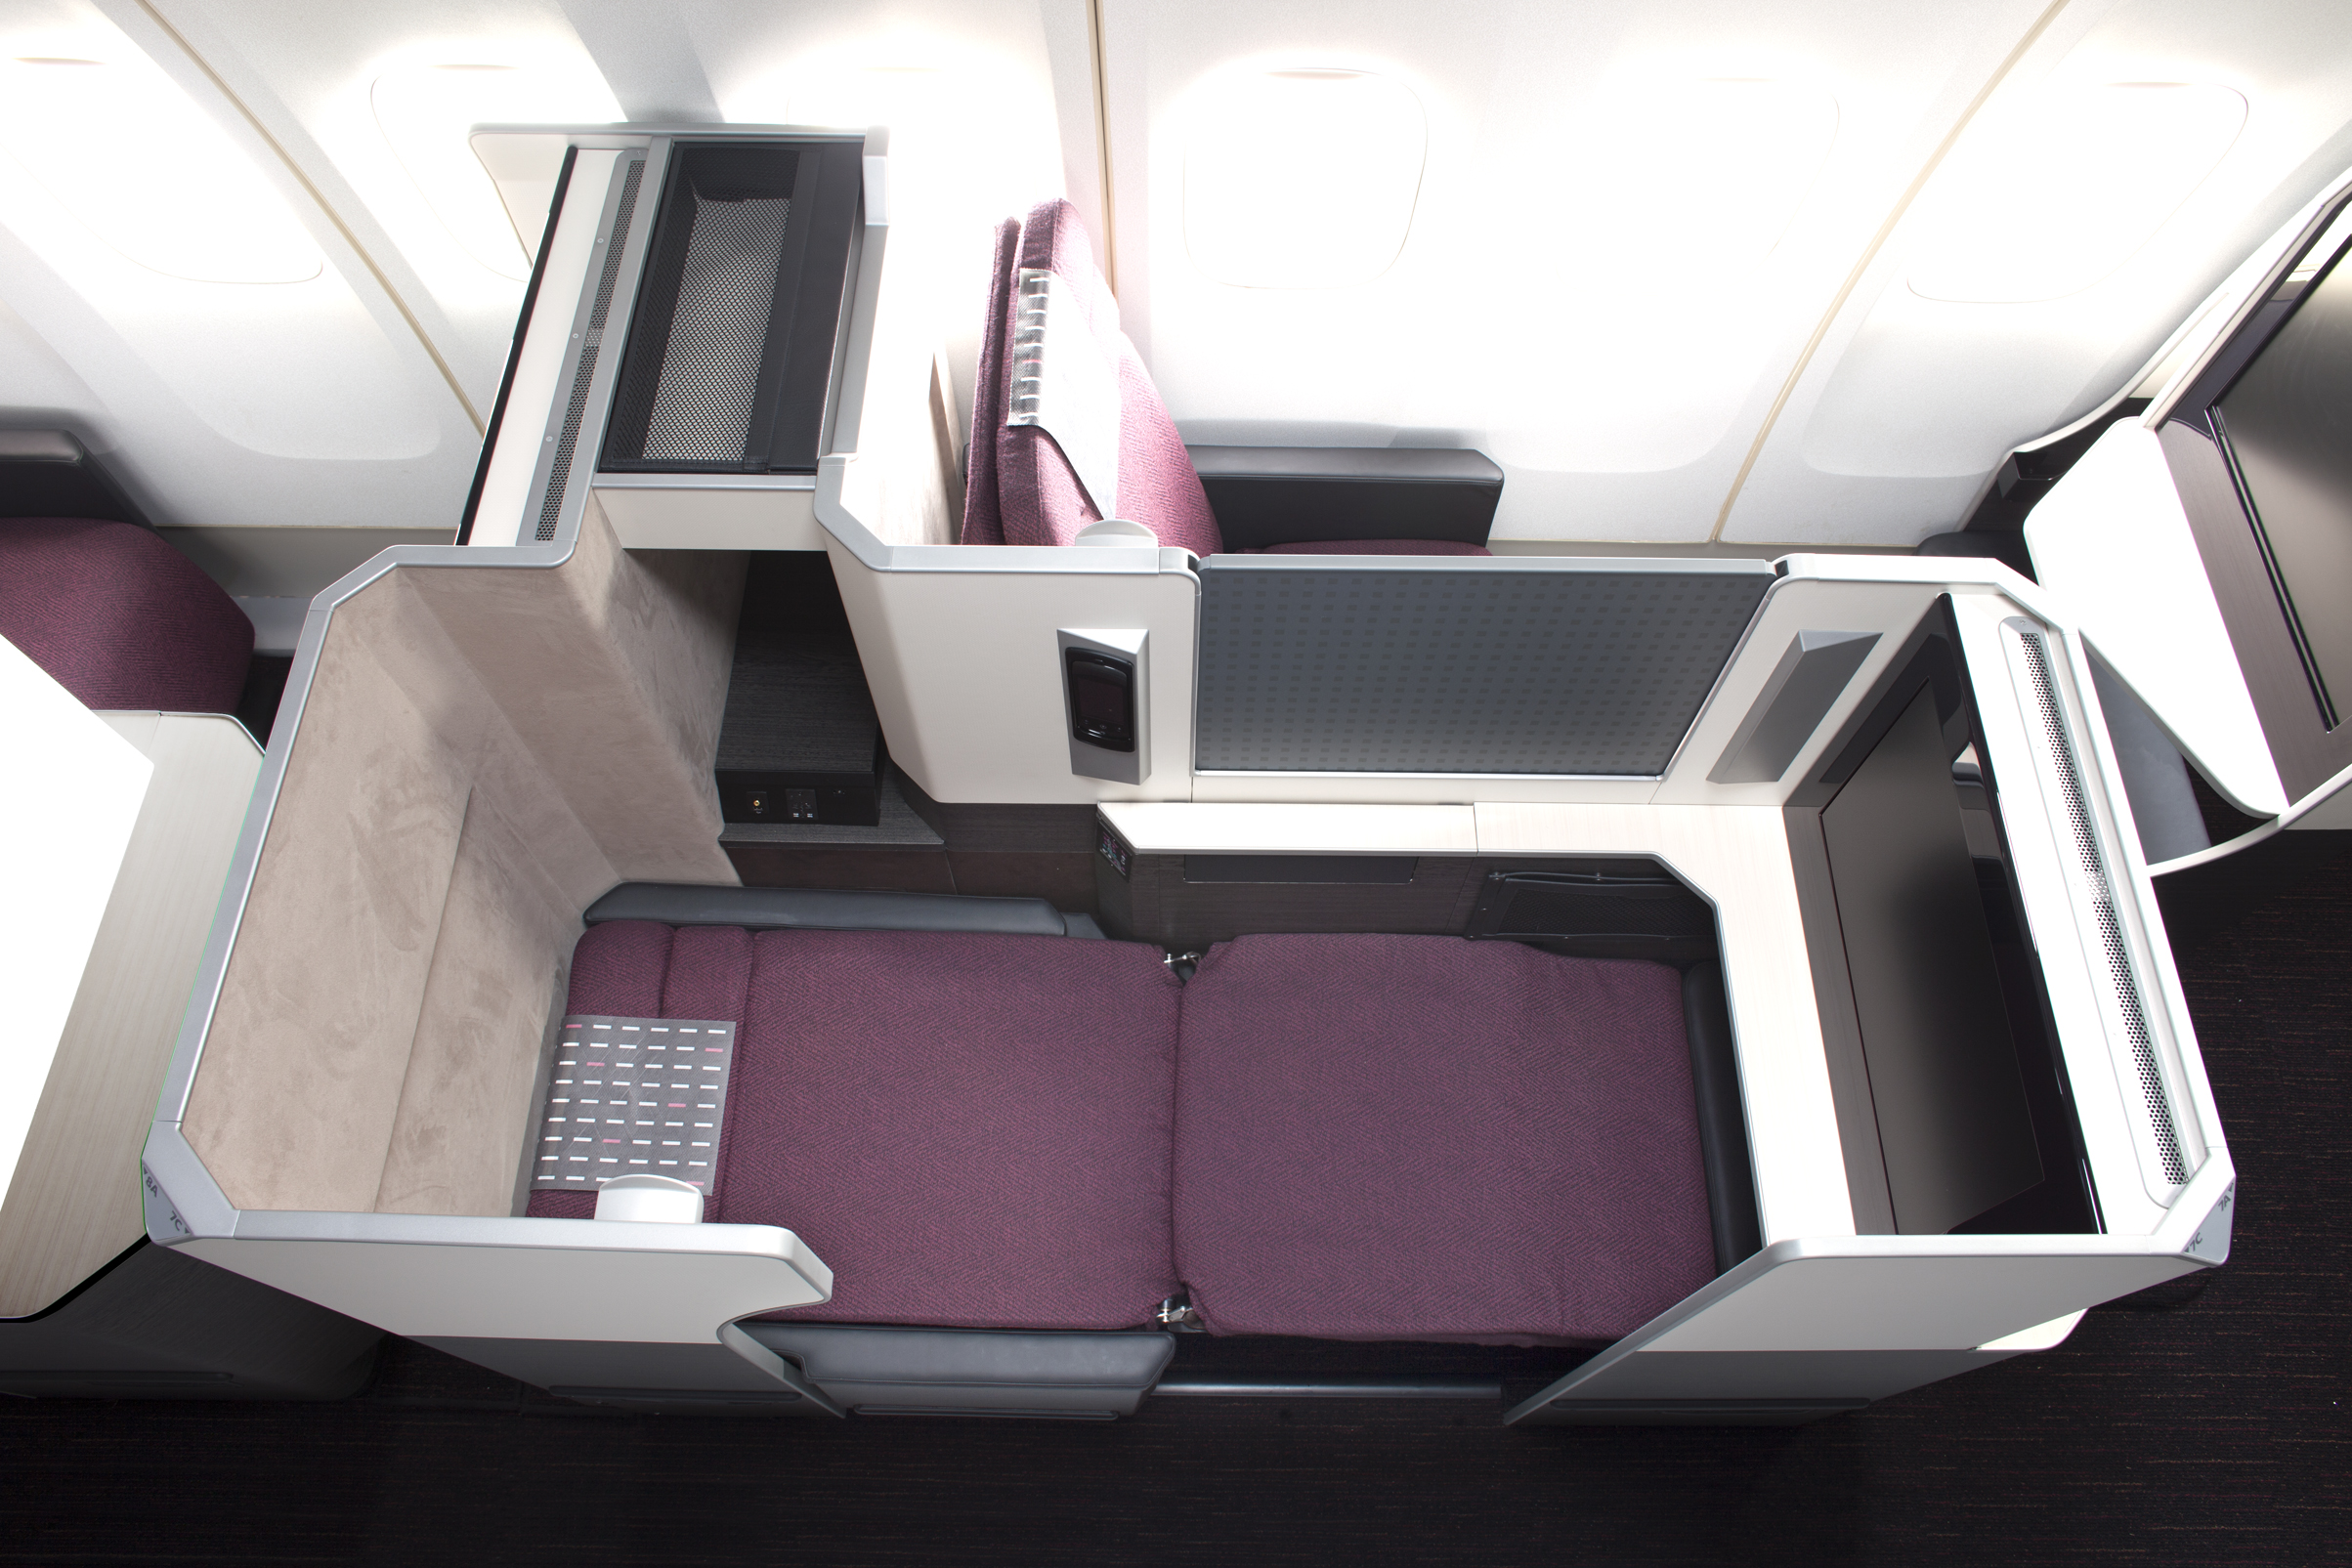 Fine New Korean Air Prestige Suite Indicates A New Seating Trend Bralicious Painted Fabric Chair Ideas Braliciousco